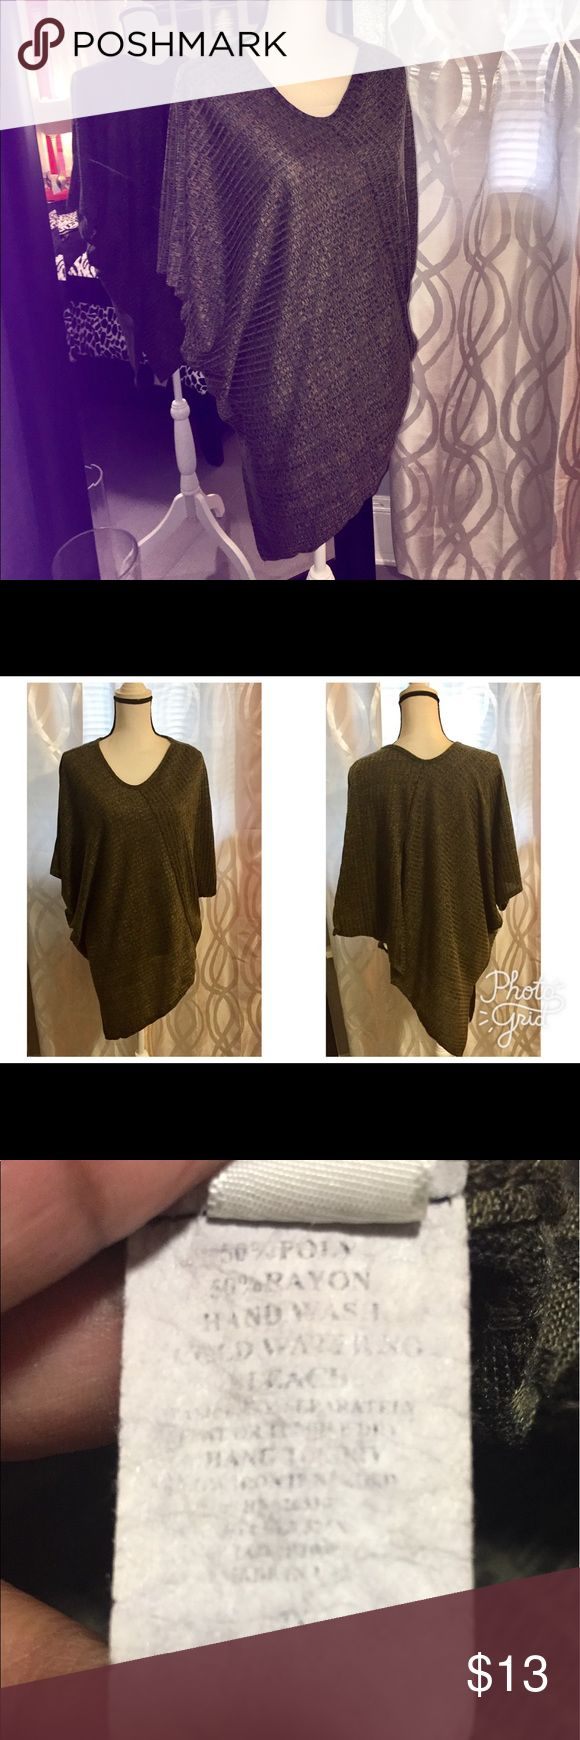 Olive Green Short Sleeve top Sz 2x Olive Green Short Sleeve top Sz 2x Tops